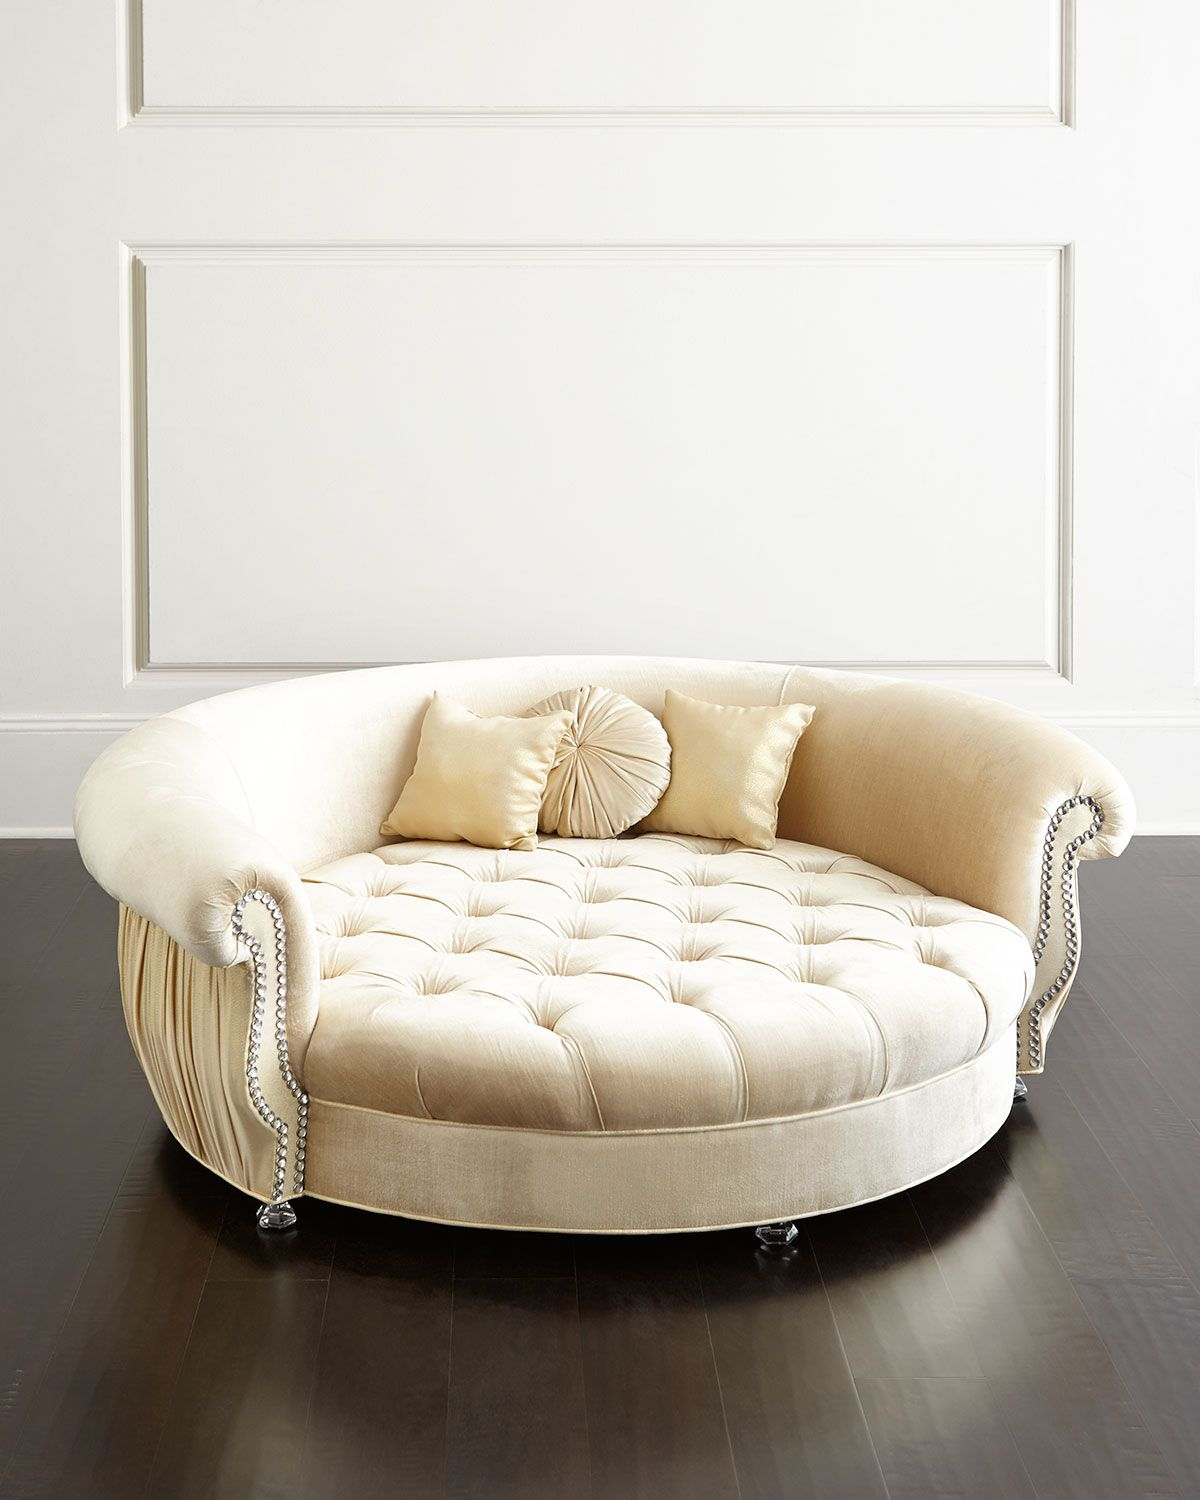 Best 25 Cuddle Bed Ideas On Pinterest Luxury Furniture